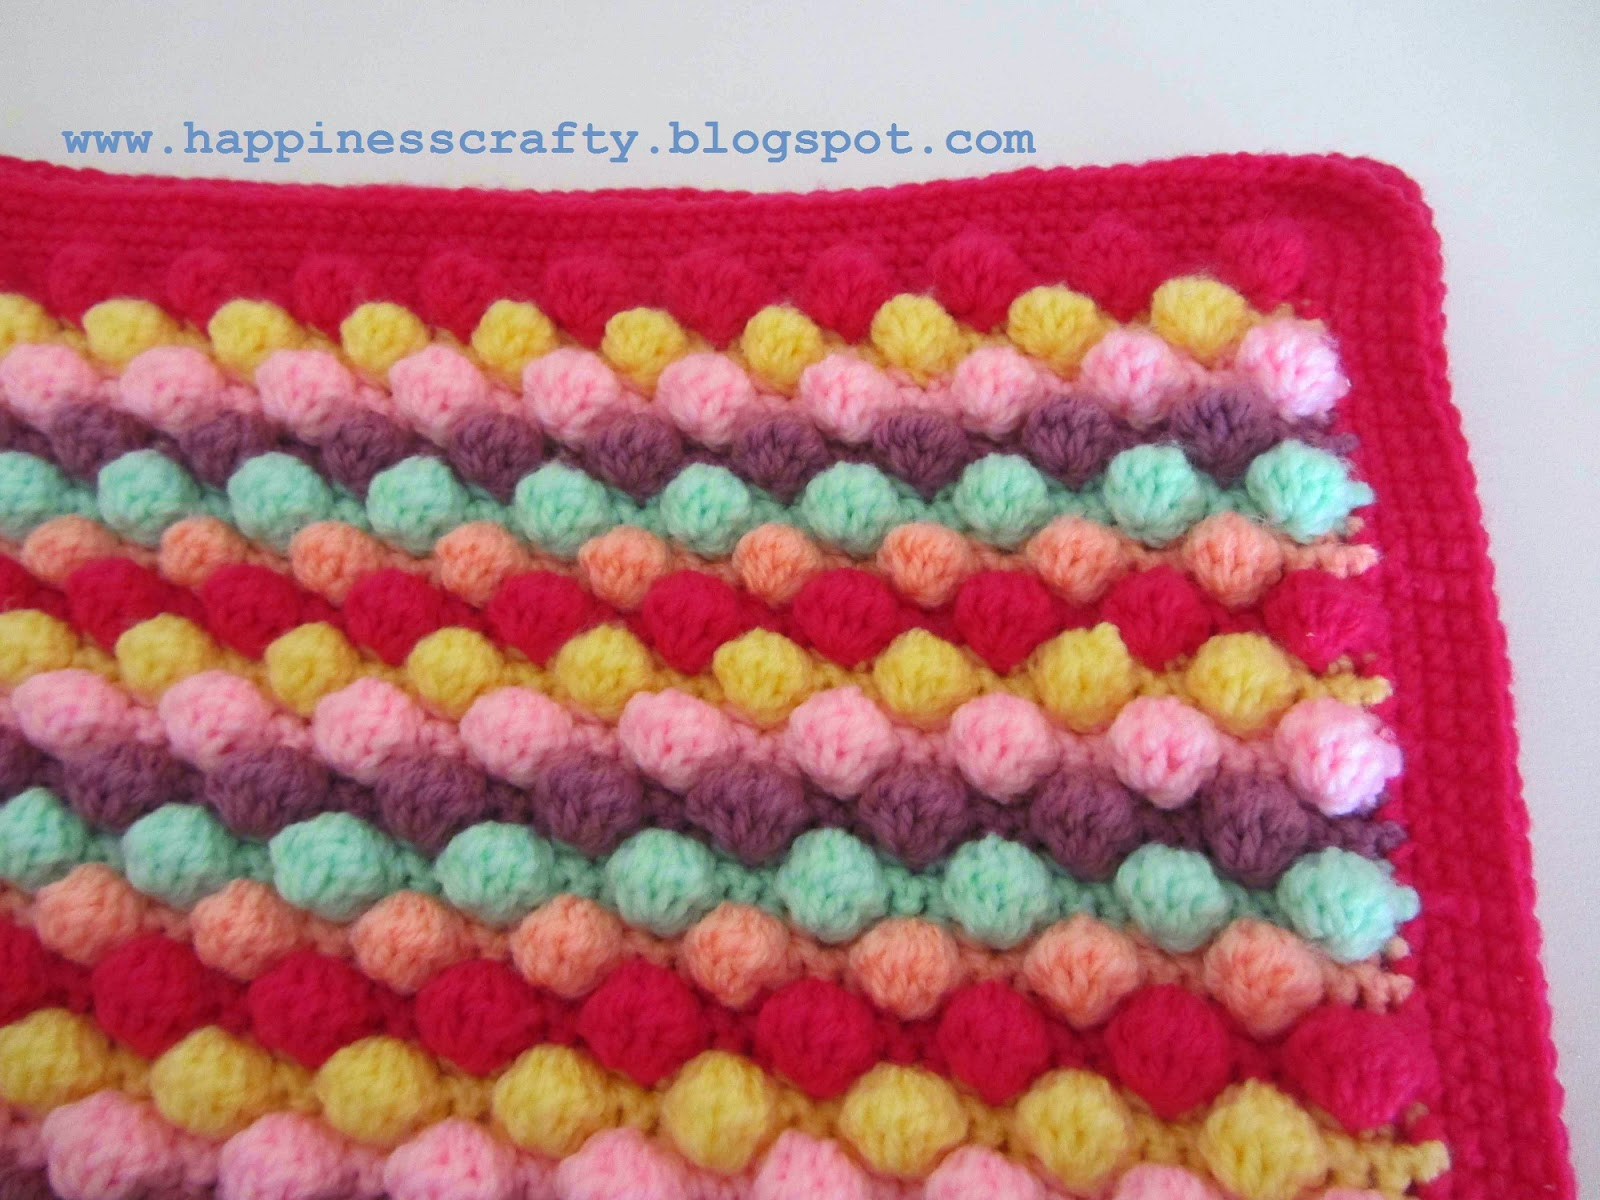 Free Crochet Pattern Bobble Baby Blanket : Happiness Crafty: ??????? 2015